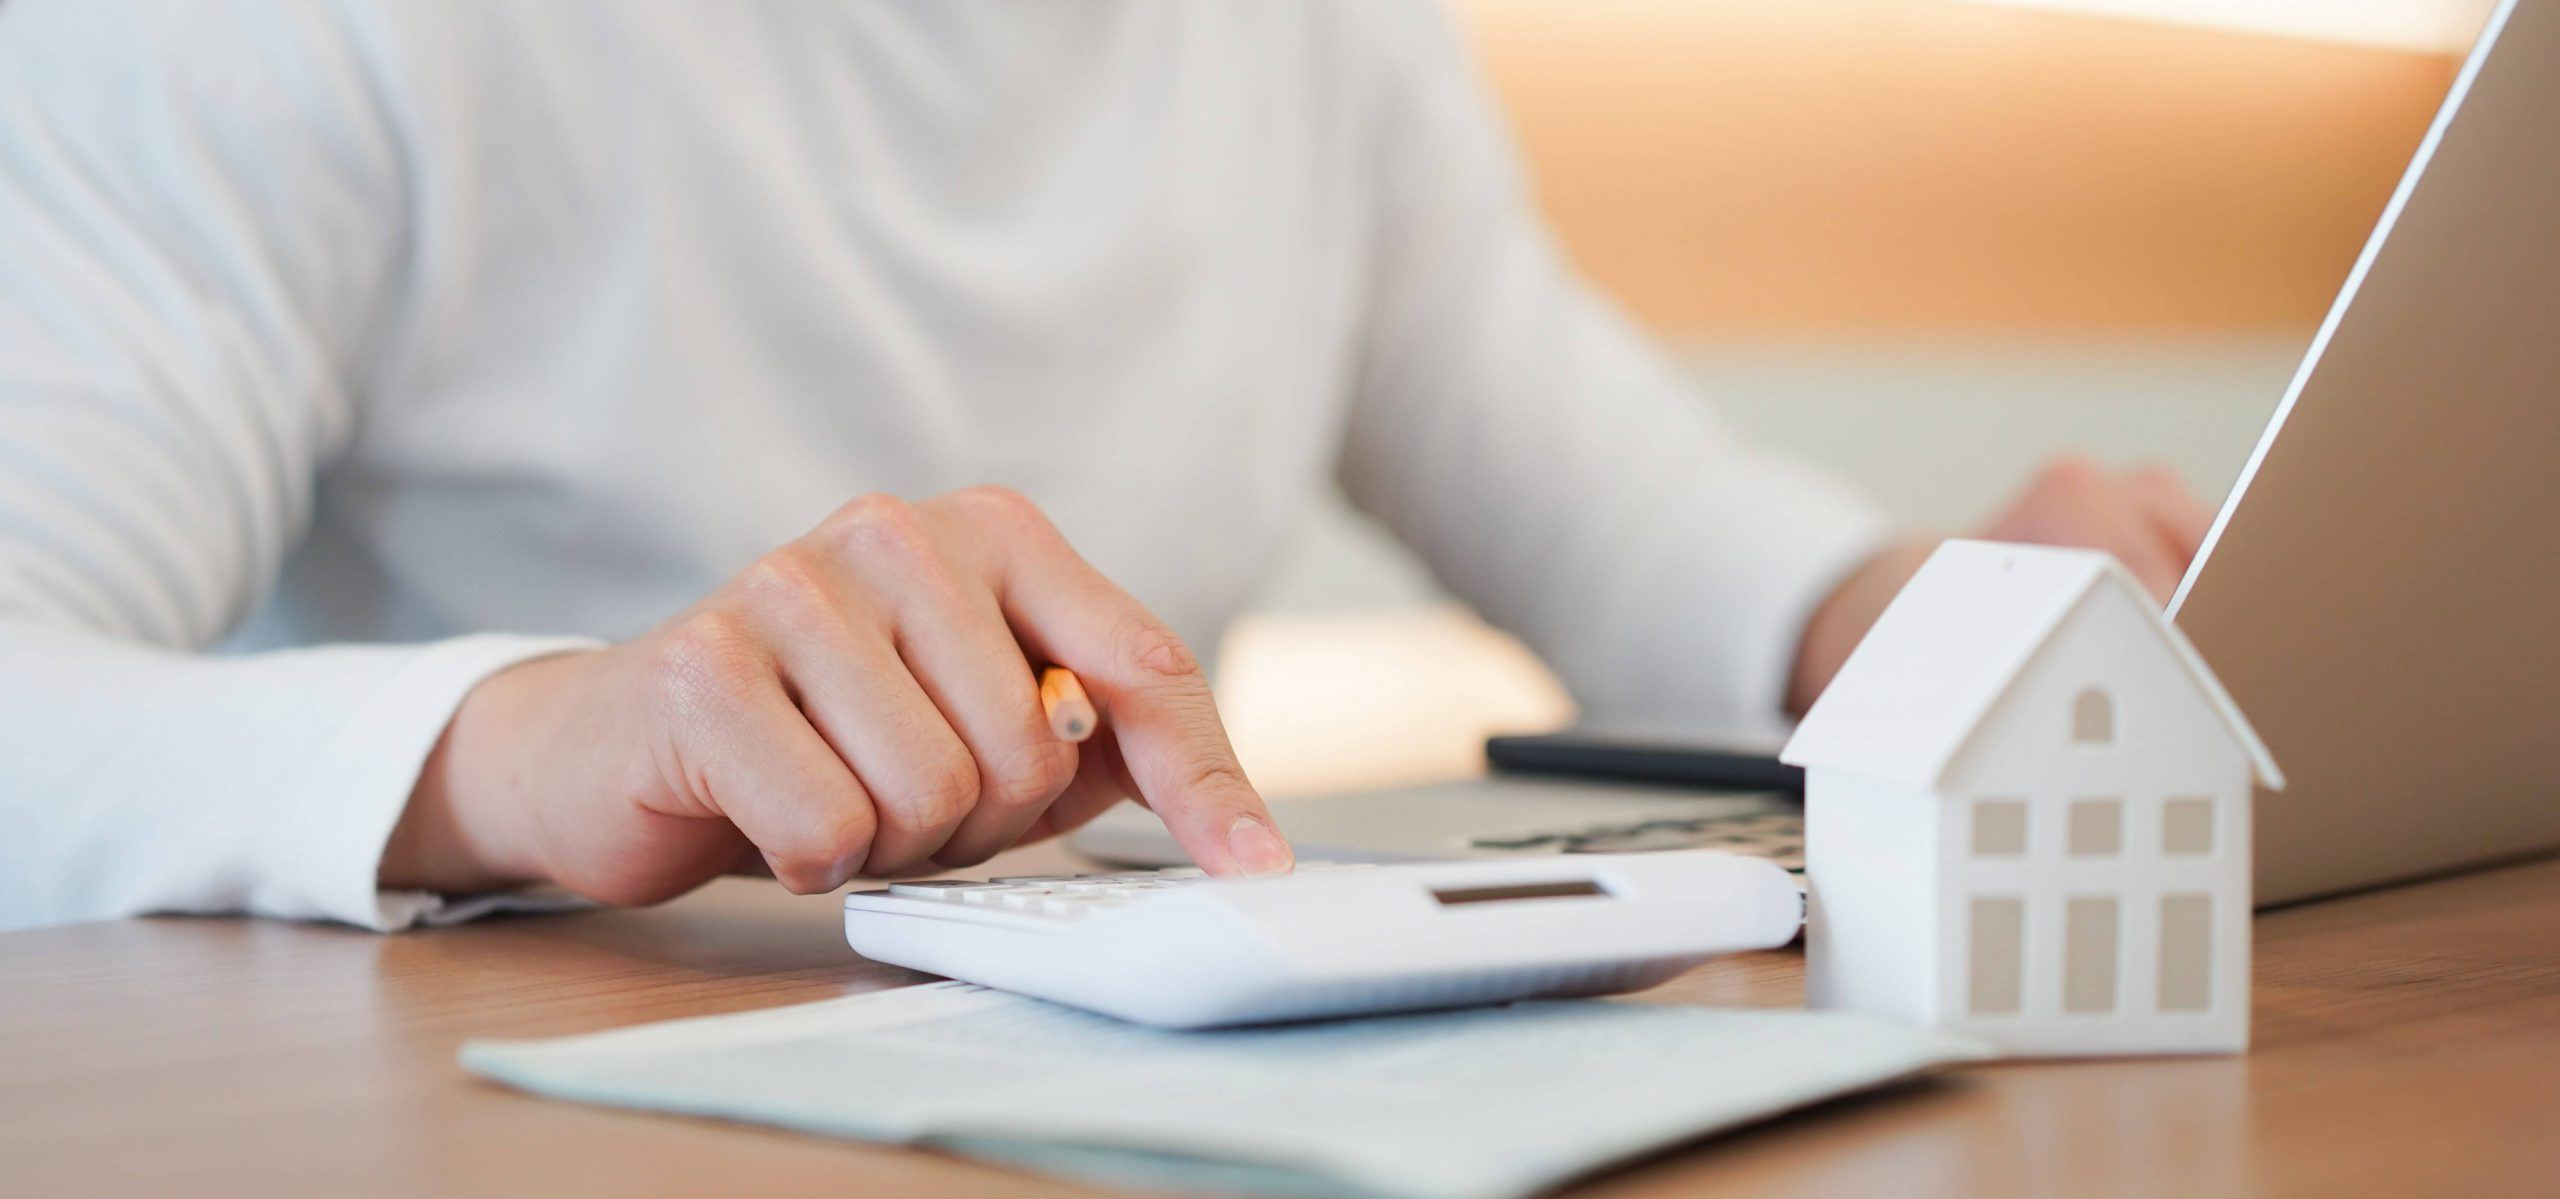 person doing calculations for a mortgage